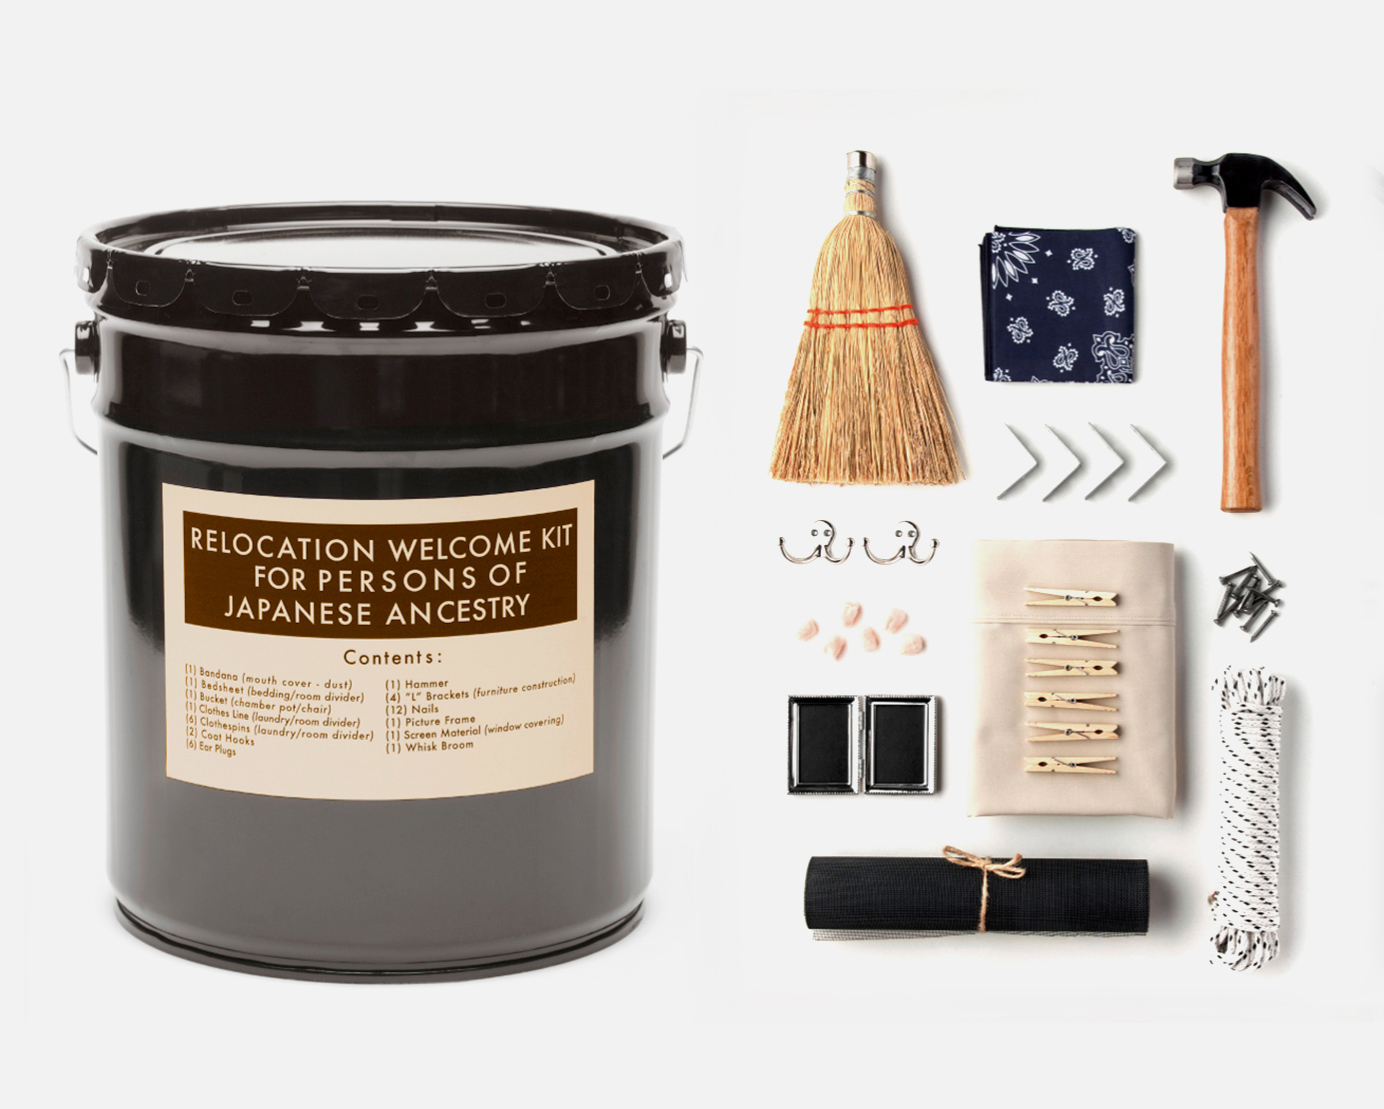 "Welcome Kit   , 2 016 Bucket, whisk broom, handkerchief, hammer, metal brackets, hooks, ear plugs, nails, clothespins, bedsheet, picture frame, rope, metal screen.   15x9""    Welcome Kit  is a set of fictitious government-issued items for Japanese Americans entering incarceration camps in 1942. Each of the individual items would have been incredibly practical and useful for those about to spend years living in military style barracks with no insulation and little privacy. The items are held in a metal bucket, which would have served the dual purposes of seat and chamber pot."